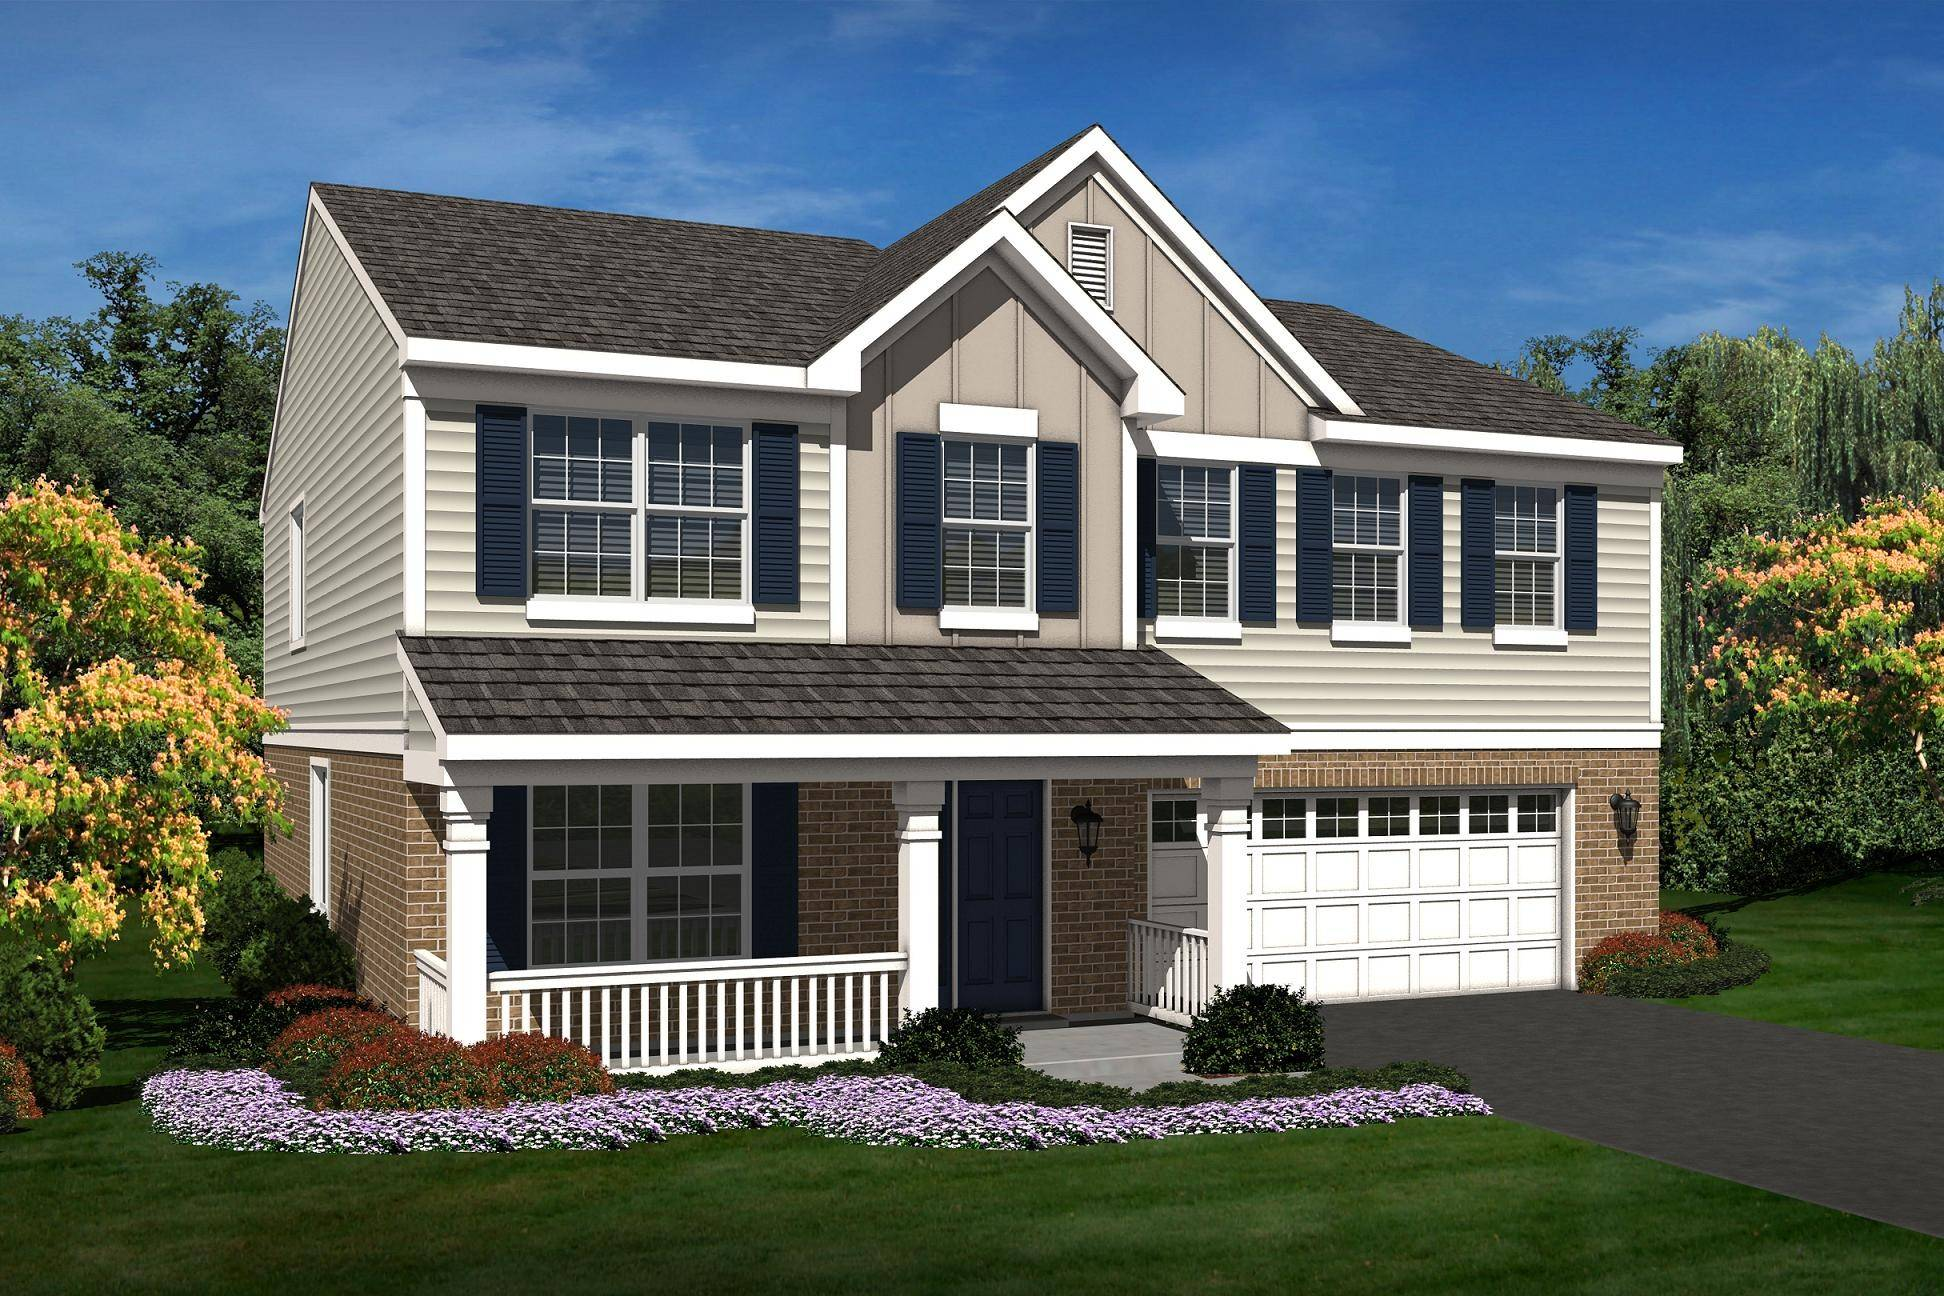 The Arlington model is offered at Heather Glen in New Lenox, one of nine D.R. Horton communities under construction in the Chicago area.